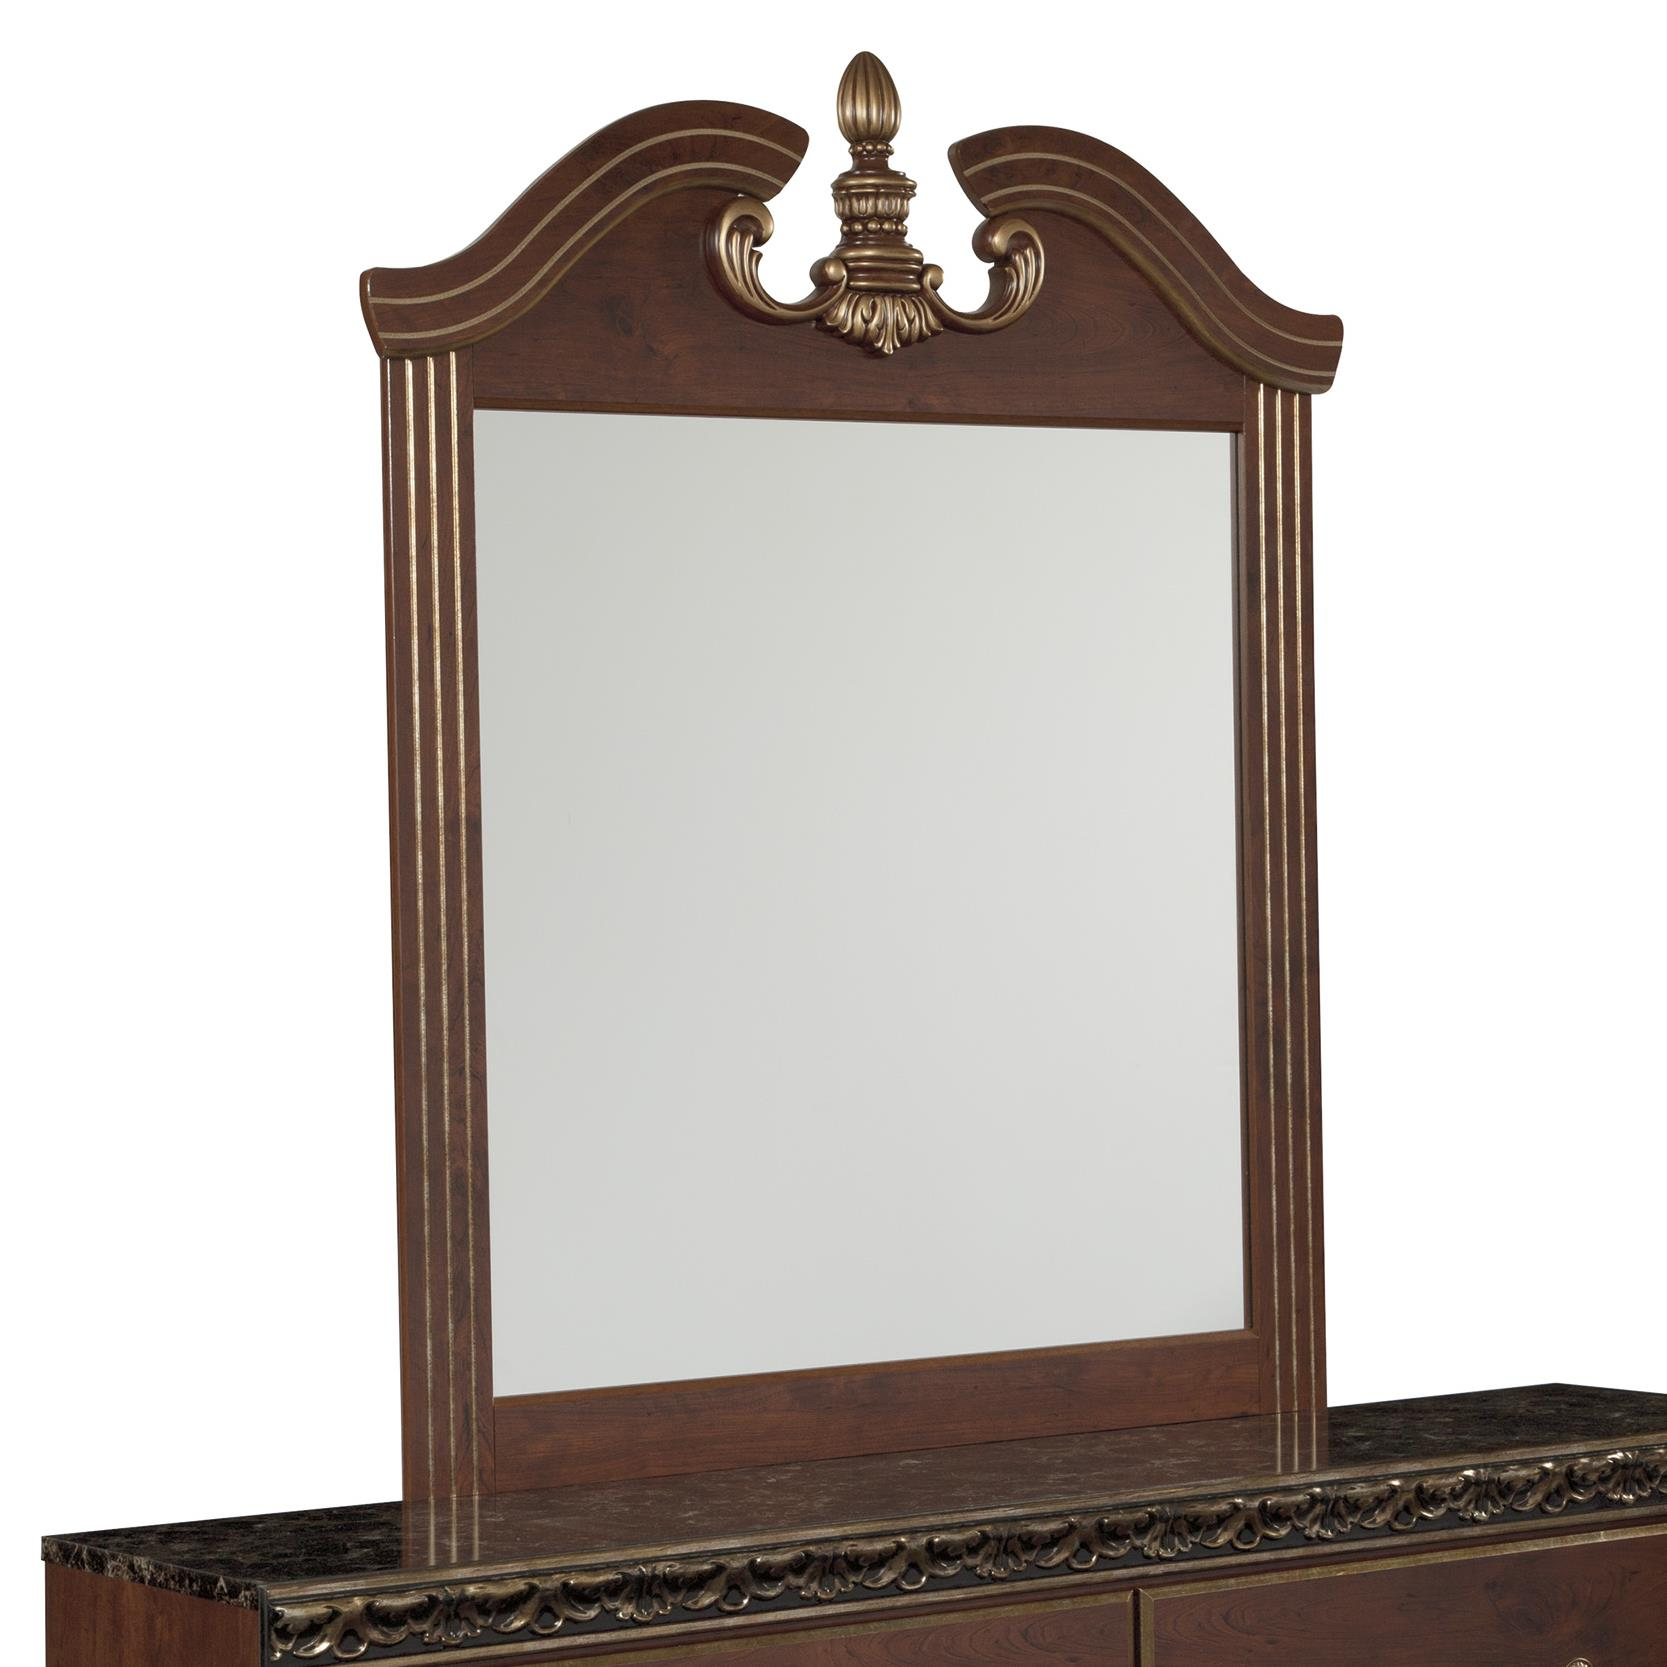 Signature Design by Ashley Naralyn Bedroom Mirror - Item Number: B164-36